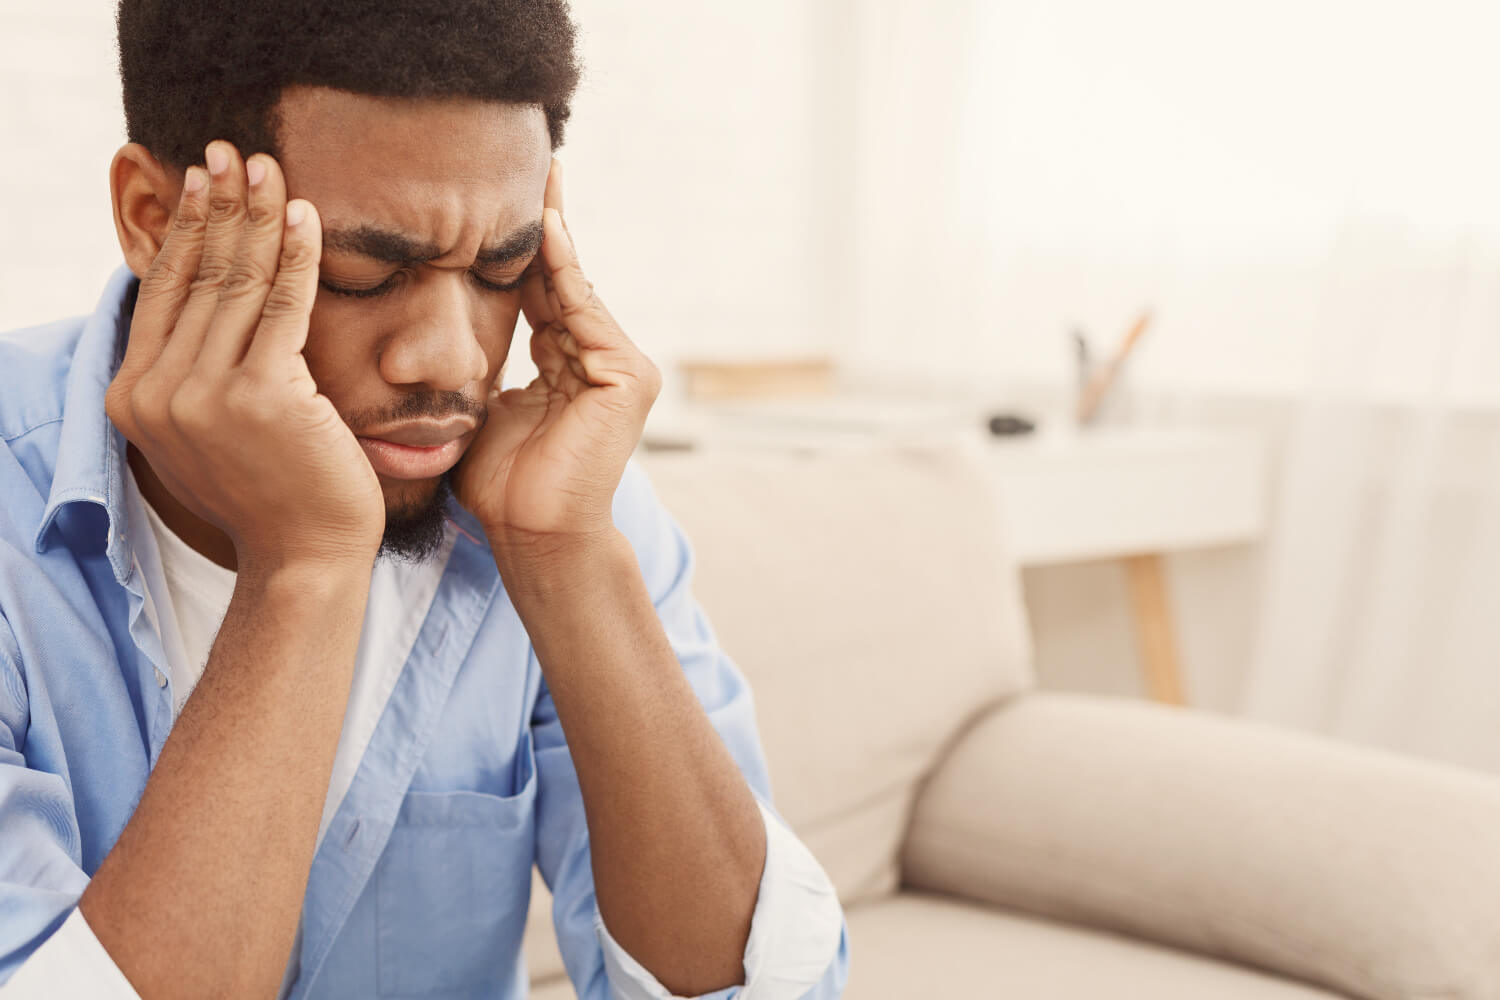 Physical symptoms of high-functioning anxiety